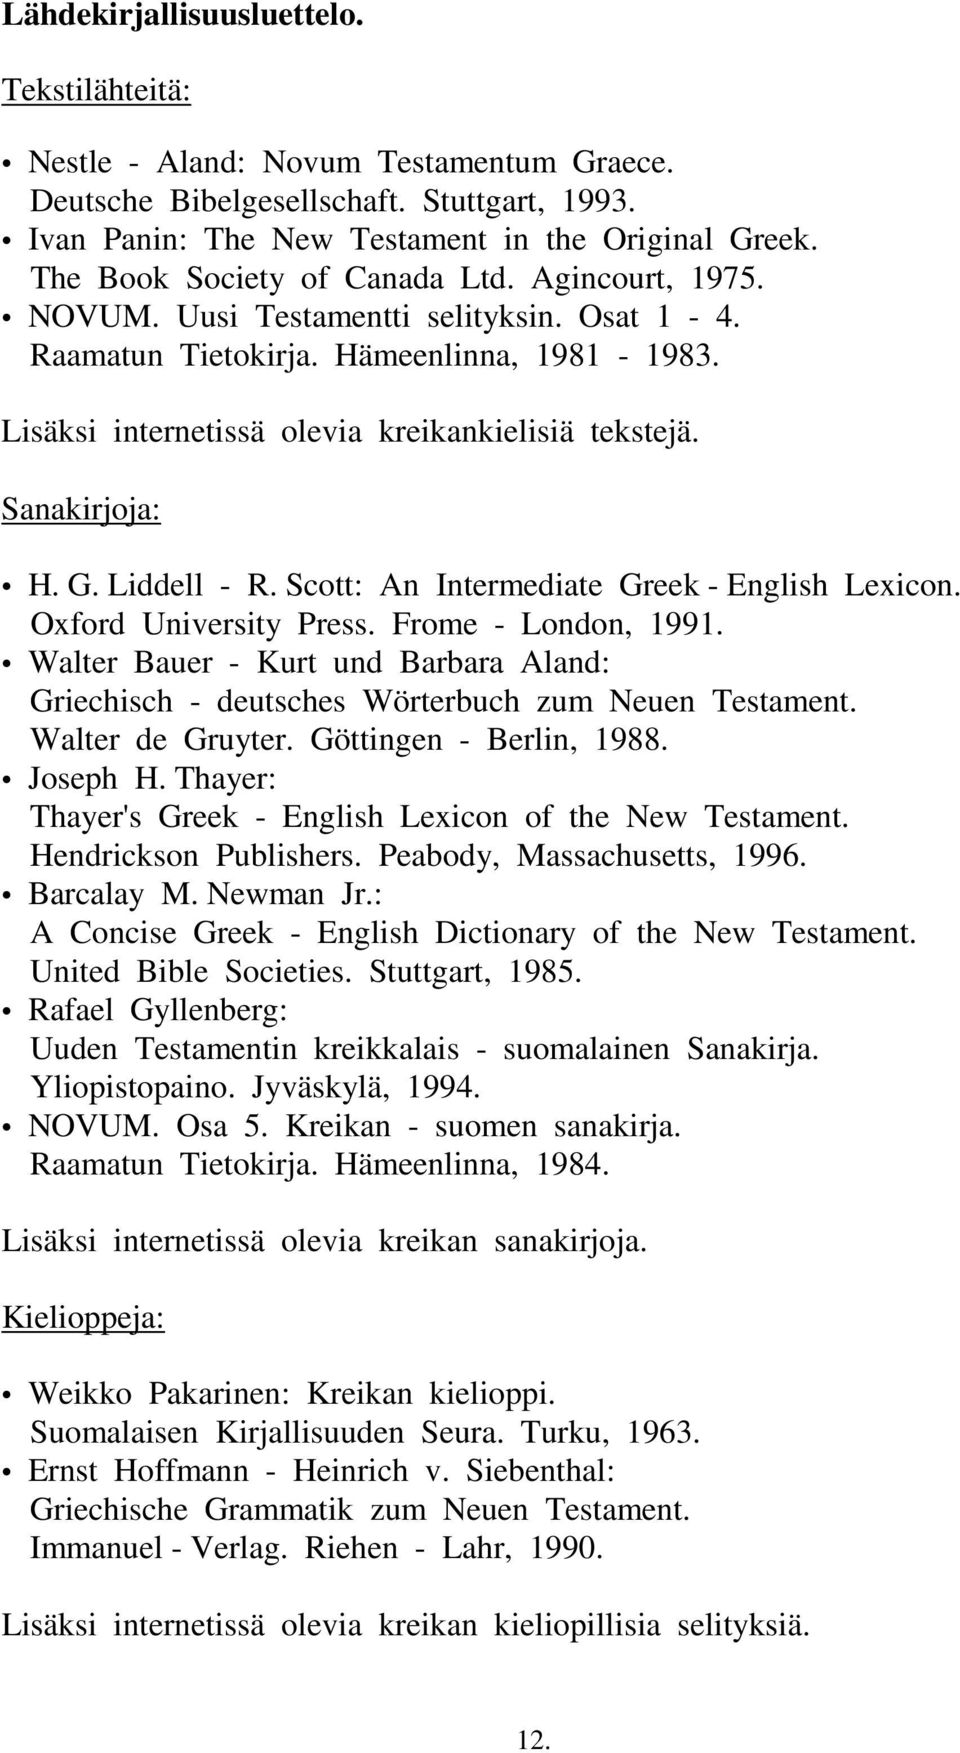 Sanakirjoja: H. G. Liddell - R. Scott: An Intermediate Greek - English Lexicon. Oxford University Press. Frome - London, 1991.